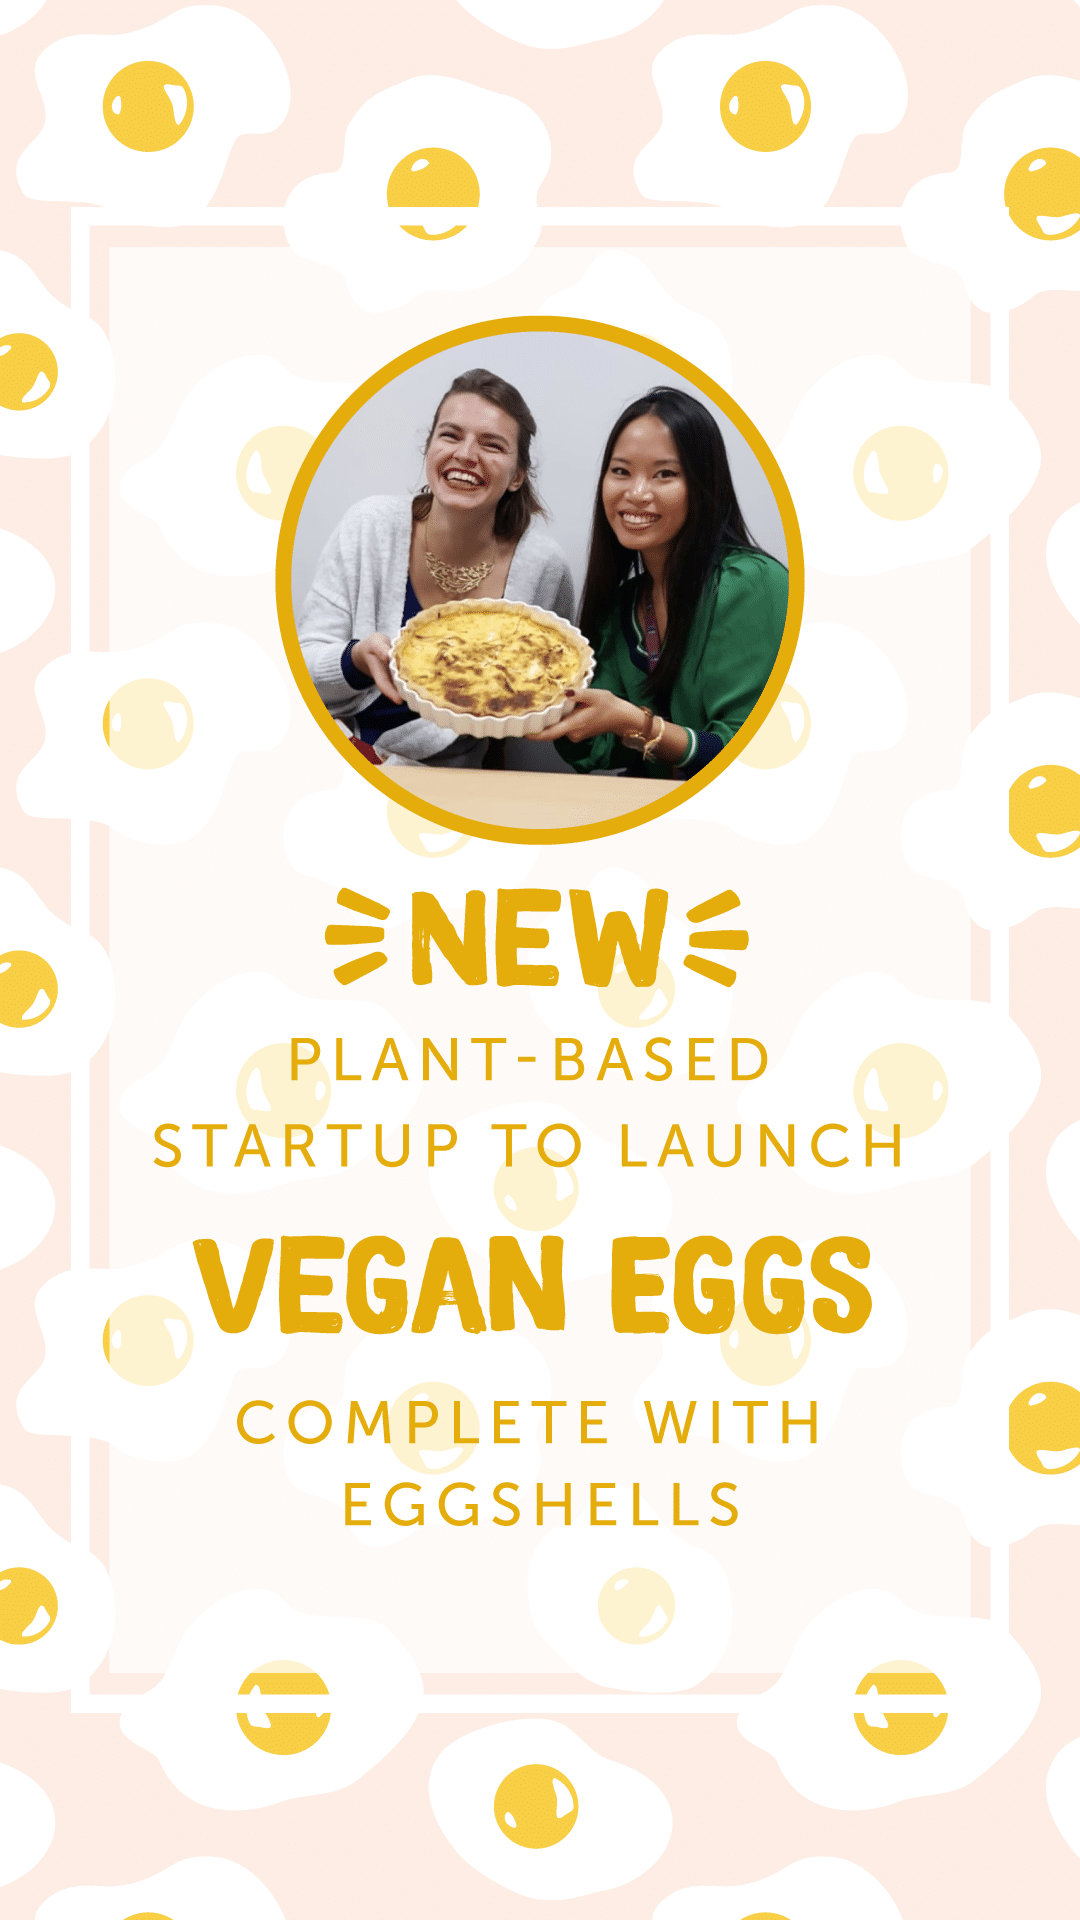 New Plant-Based Startup to Launch Vegan Eggs Complete with Eggshells